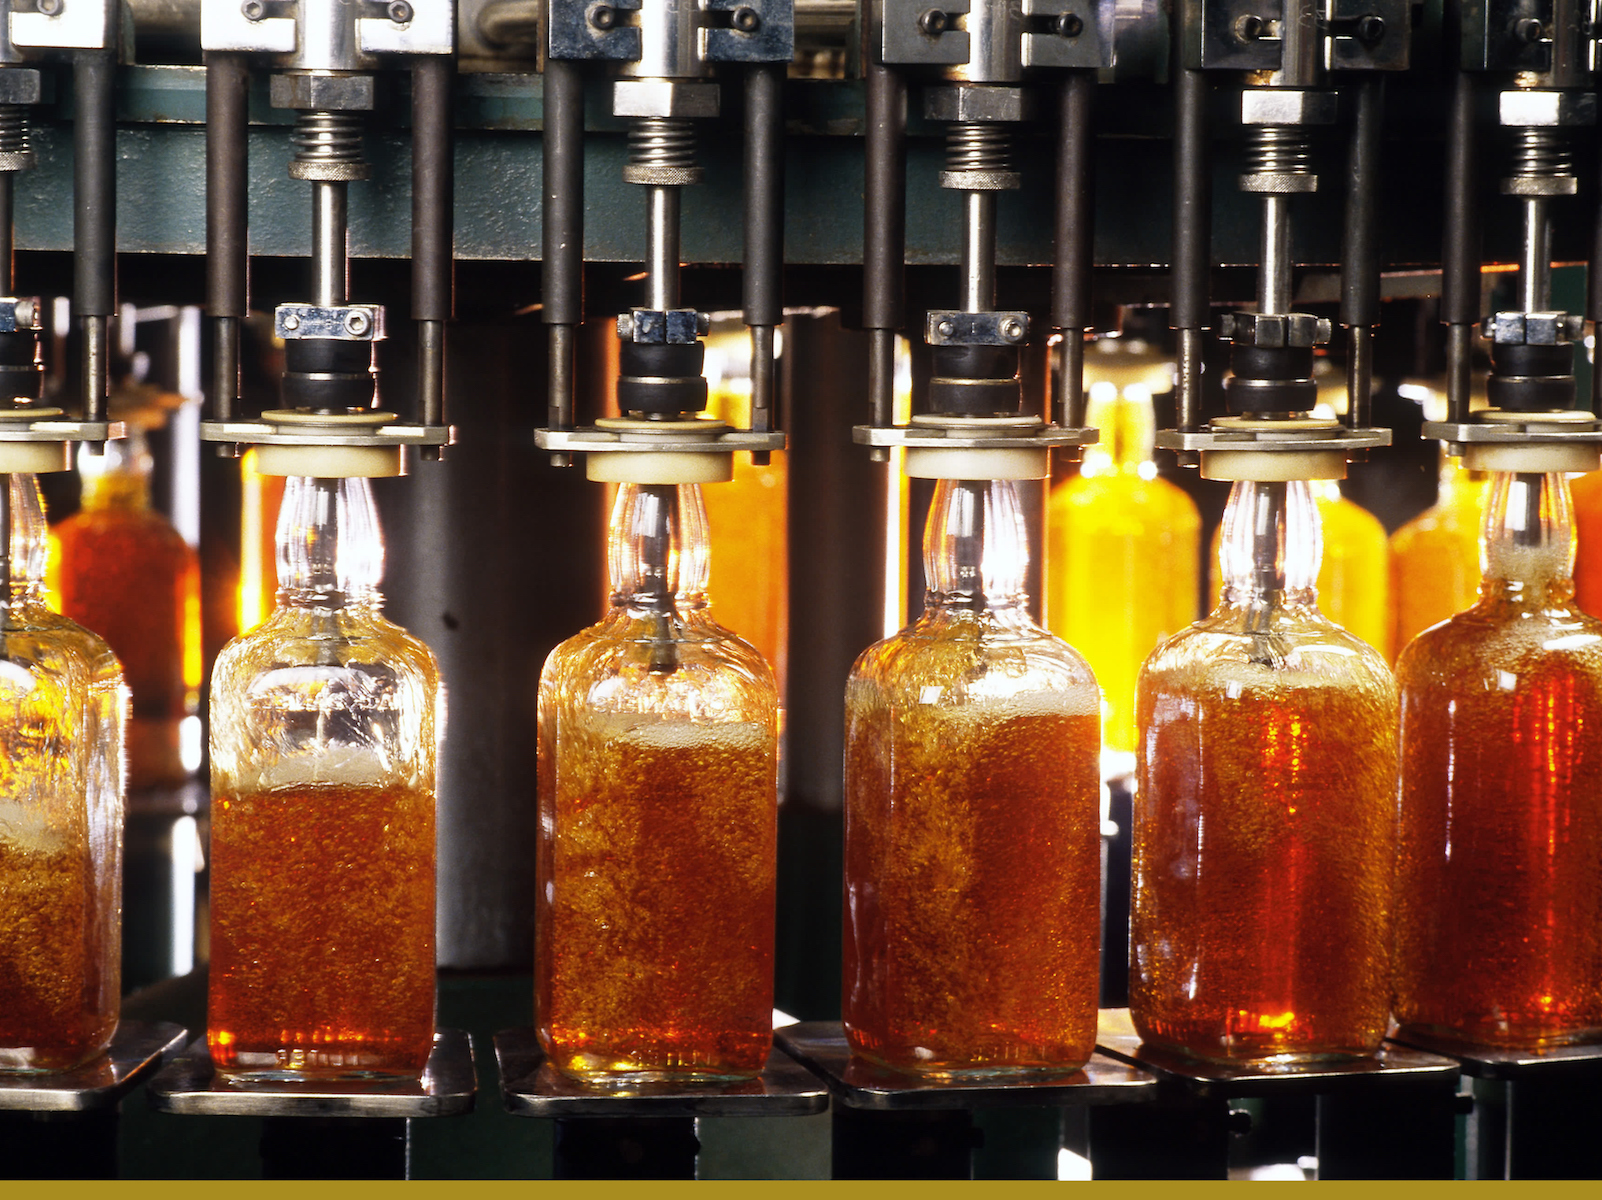 eu-whiskey-tariffs-FT-BLOG0618.jpg